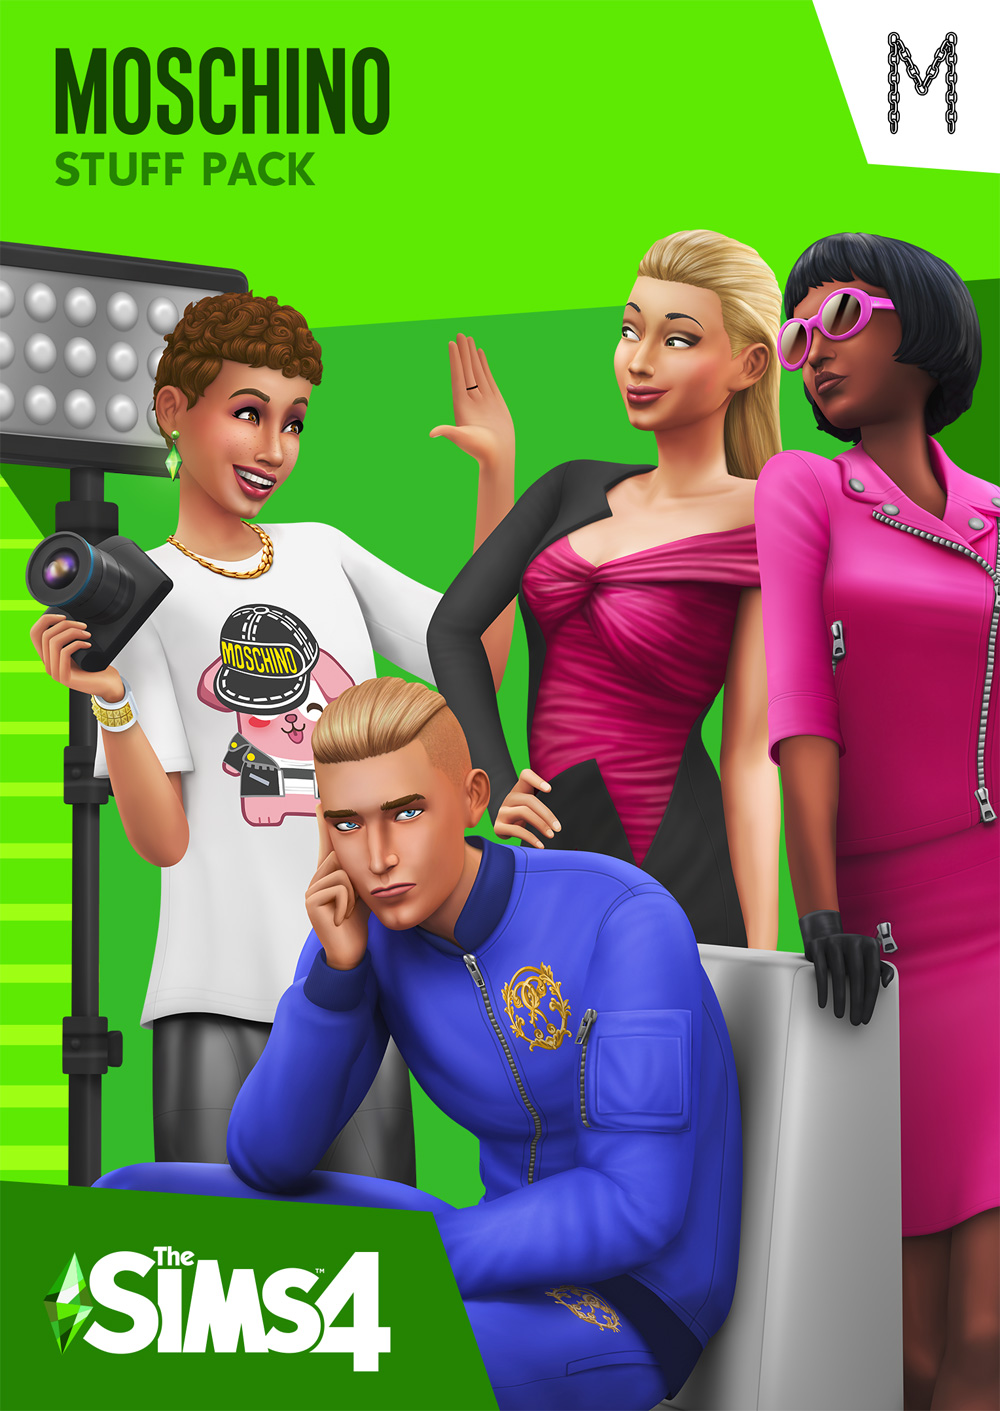 The Sims 4: Moschino Stuff | The Sims Wiki | FANDOM powered